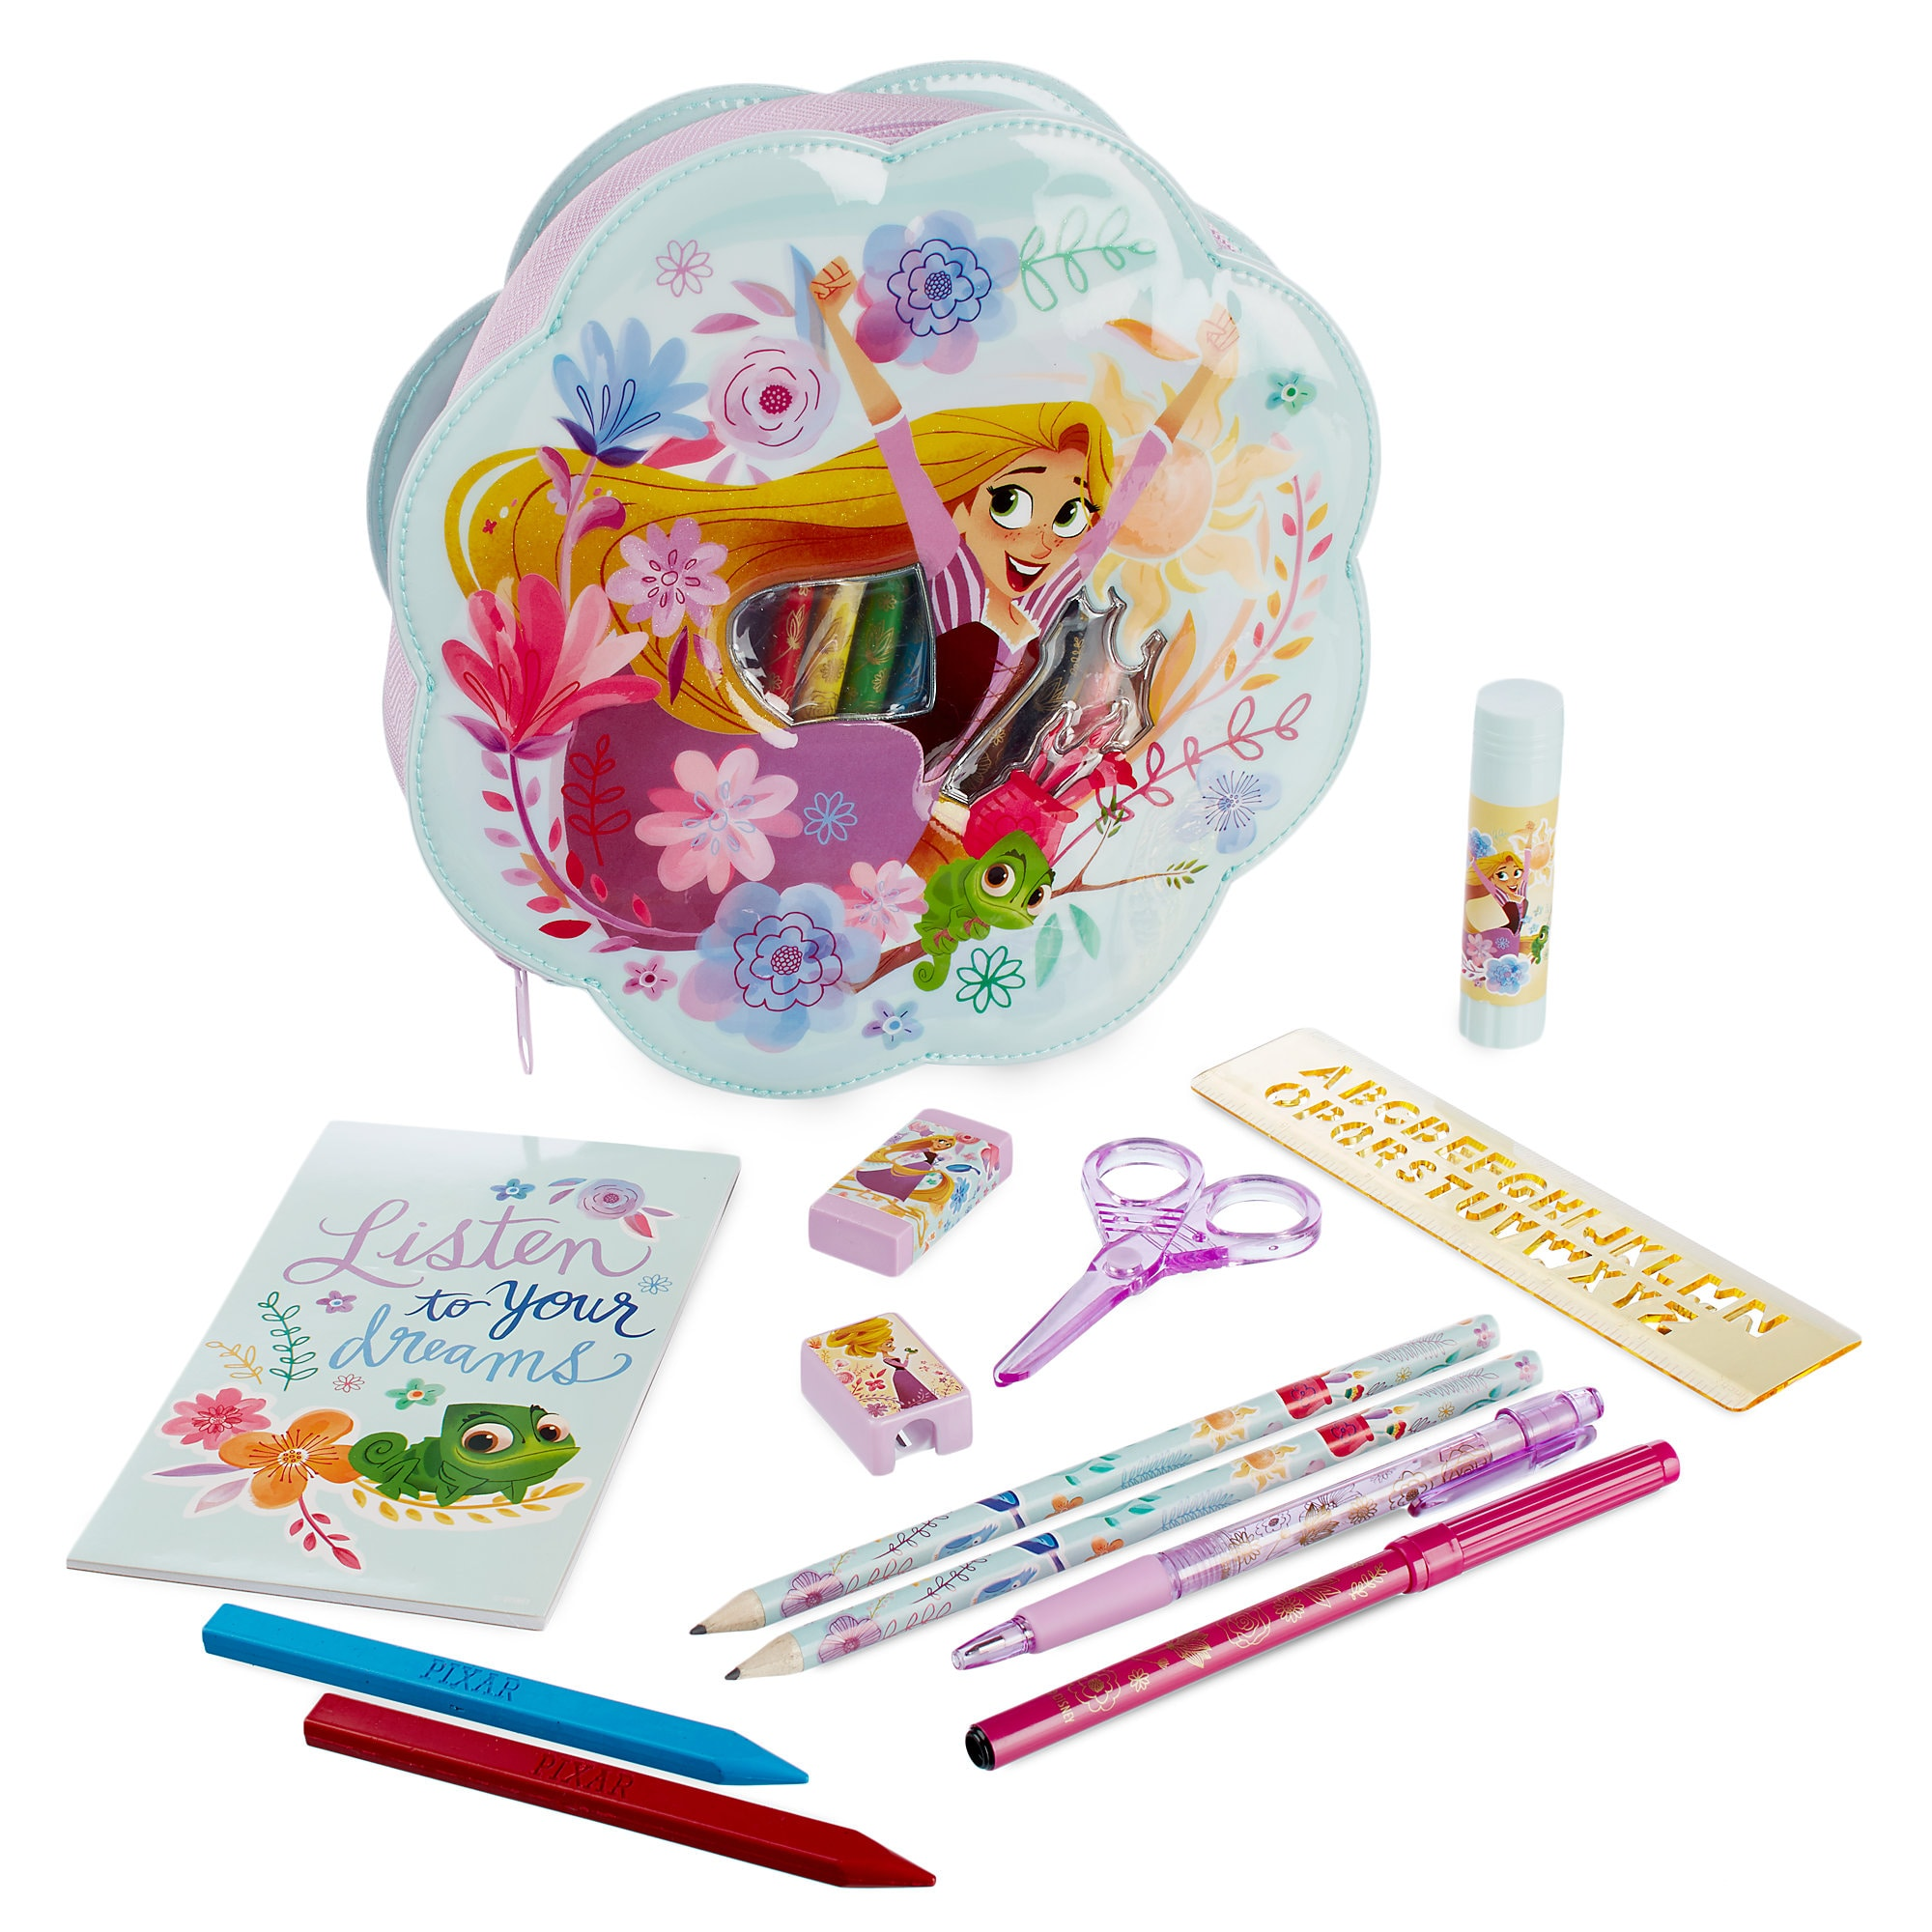 Rapunzel Stationery Kit - Tangled: The Series